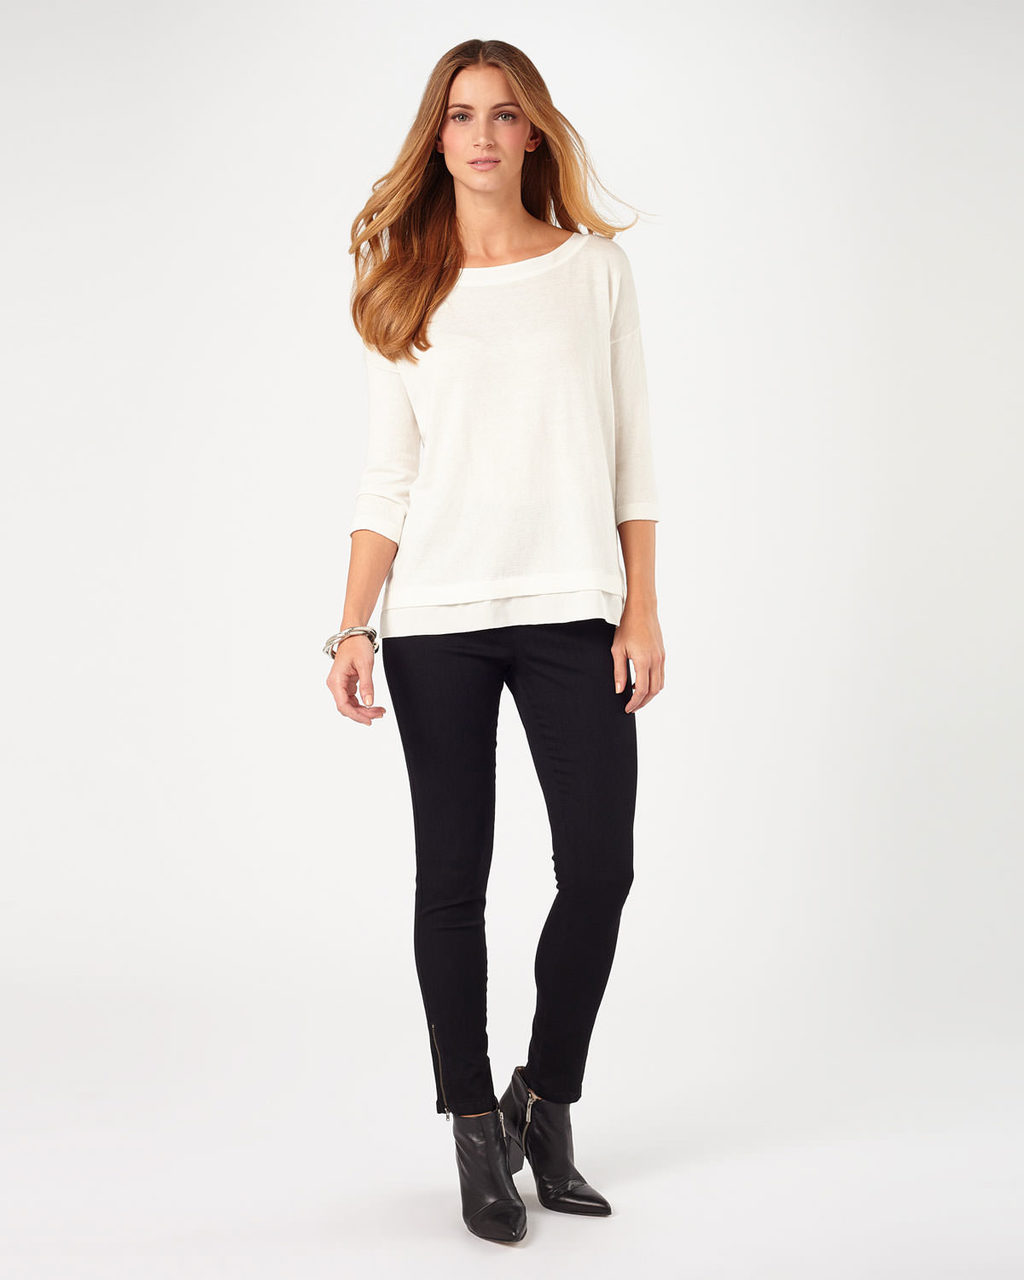 Amina Zip 7/8th Jegging - length: standard; pattern: plain; waist: high rise; style: jeggings; predominant colour: black; occasions: casual, creative work; fibres: cotton - stretch; texture group: denim; pattern type: fabric; season: a/w 2015; wardrobe: basic